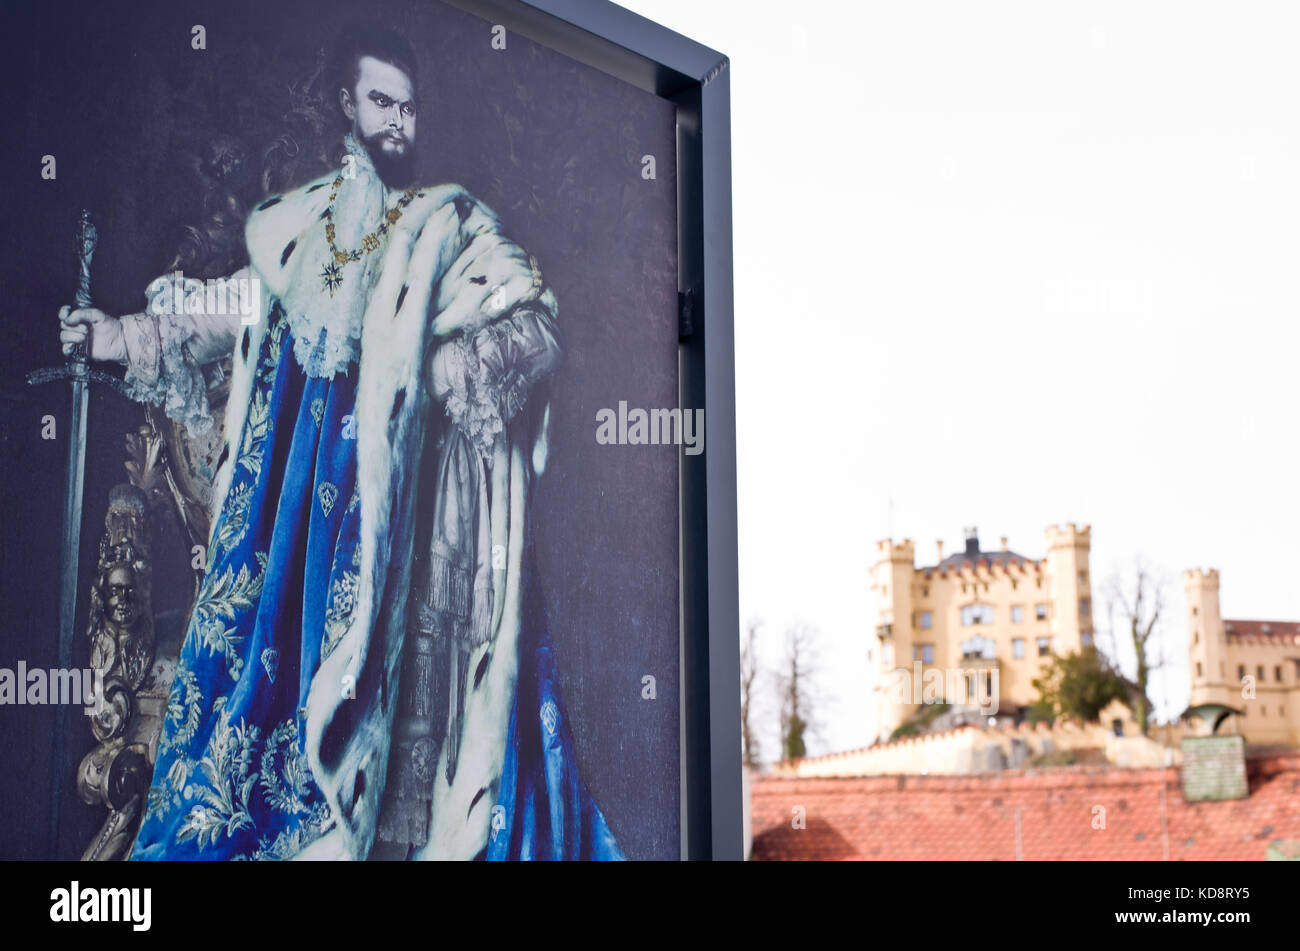 Poster image of King Ludwig 2 of Bavaria, with the regal Romanesque Revival home of Hohenschwangau castle in background, - Stock Image